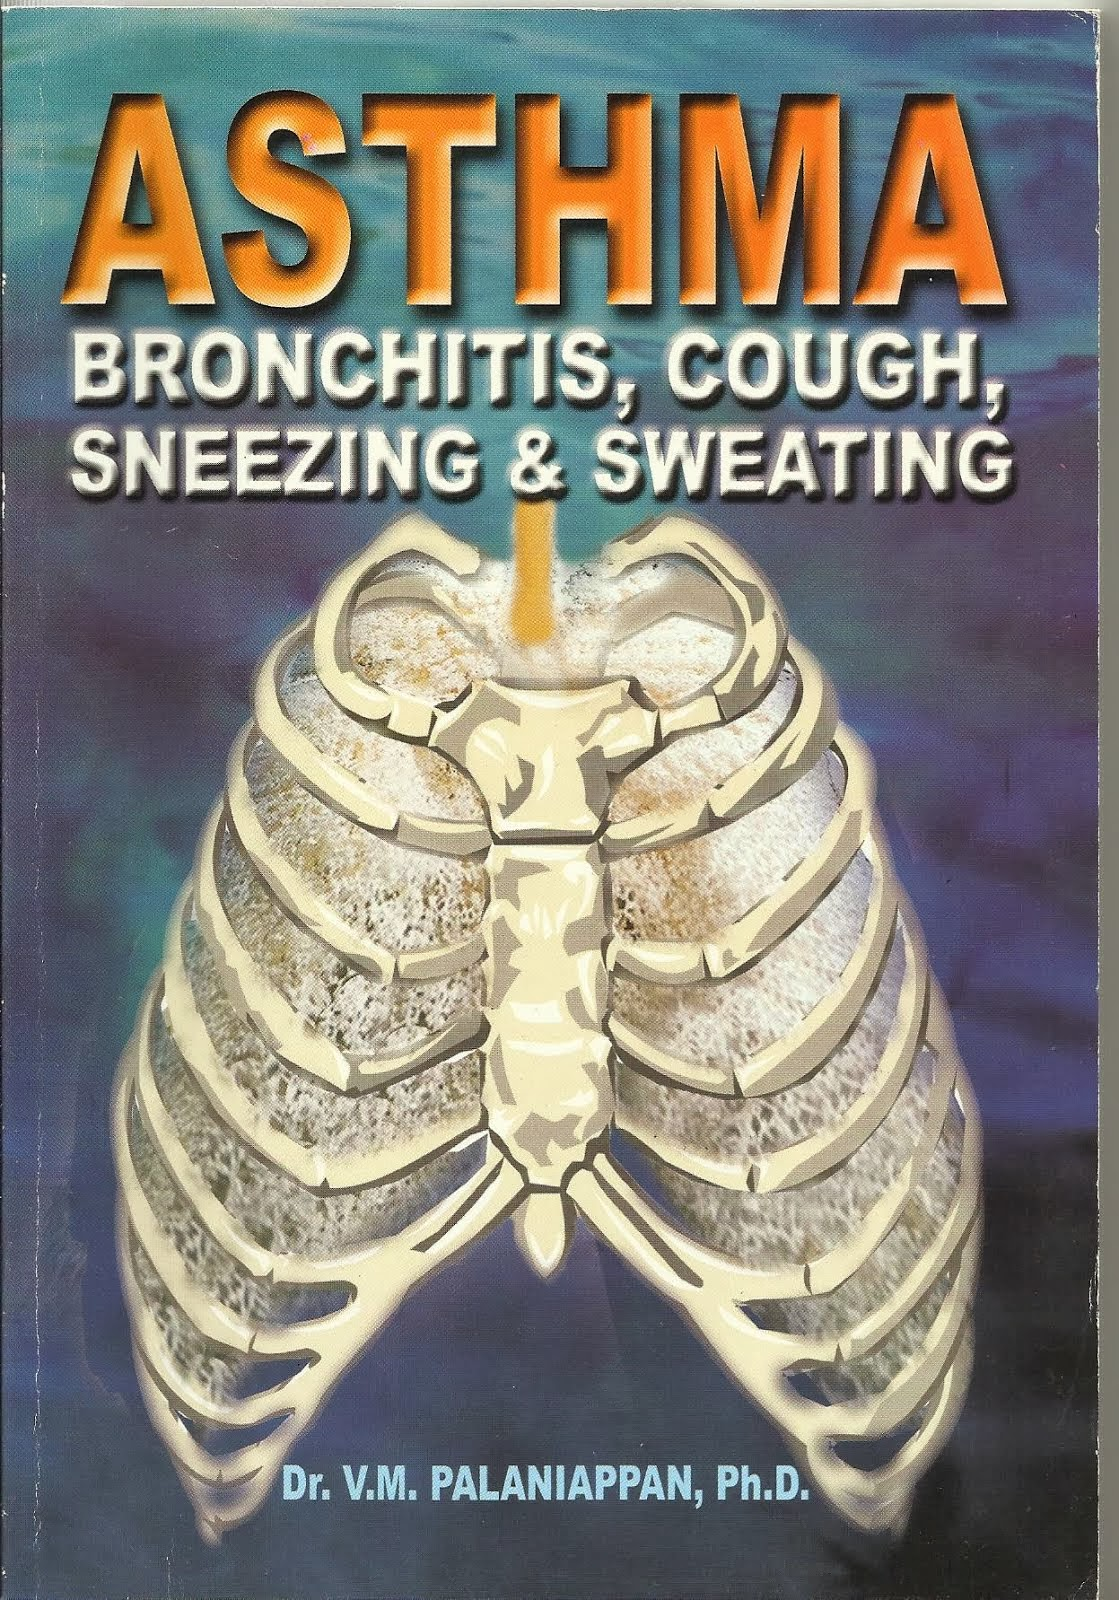 ASTHMA, BRONCHITIS, COUGH, SNEEZING & SWEATING